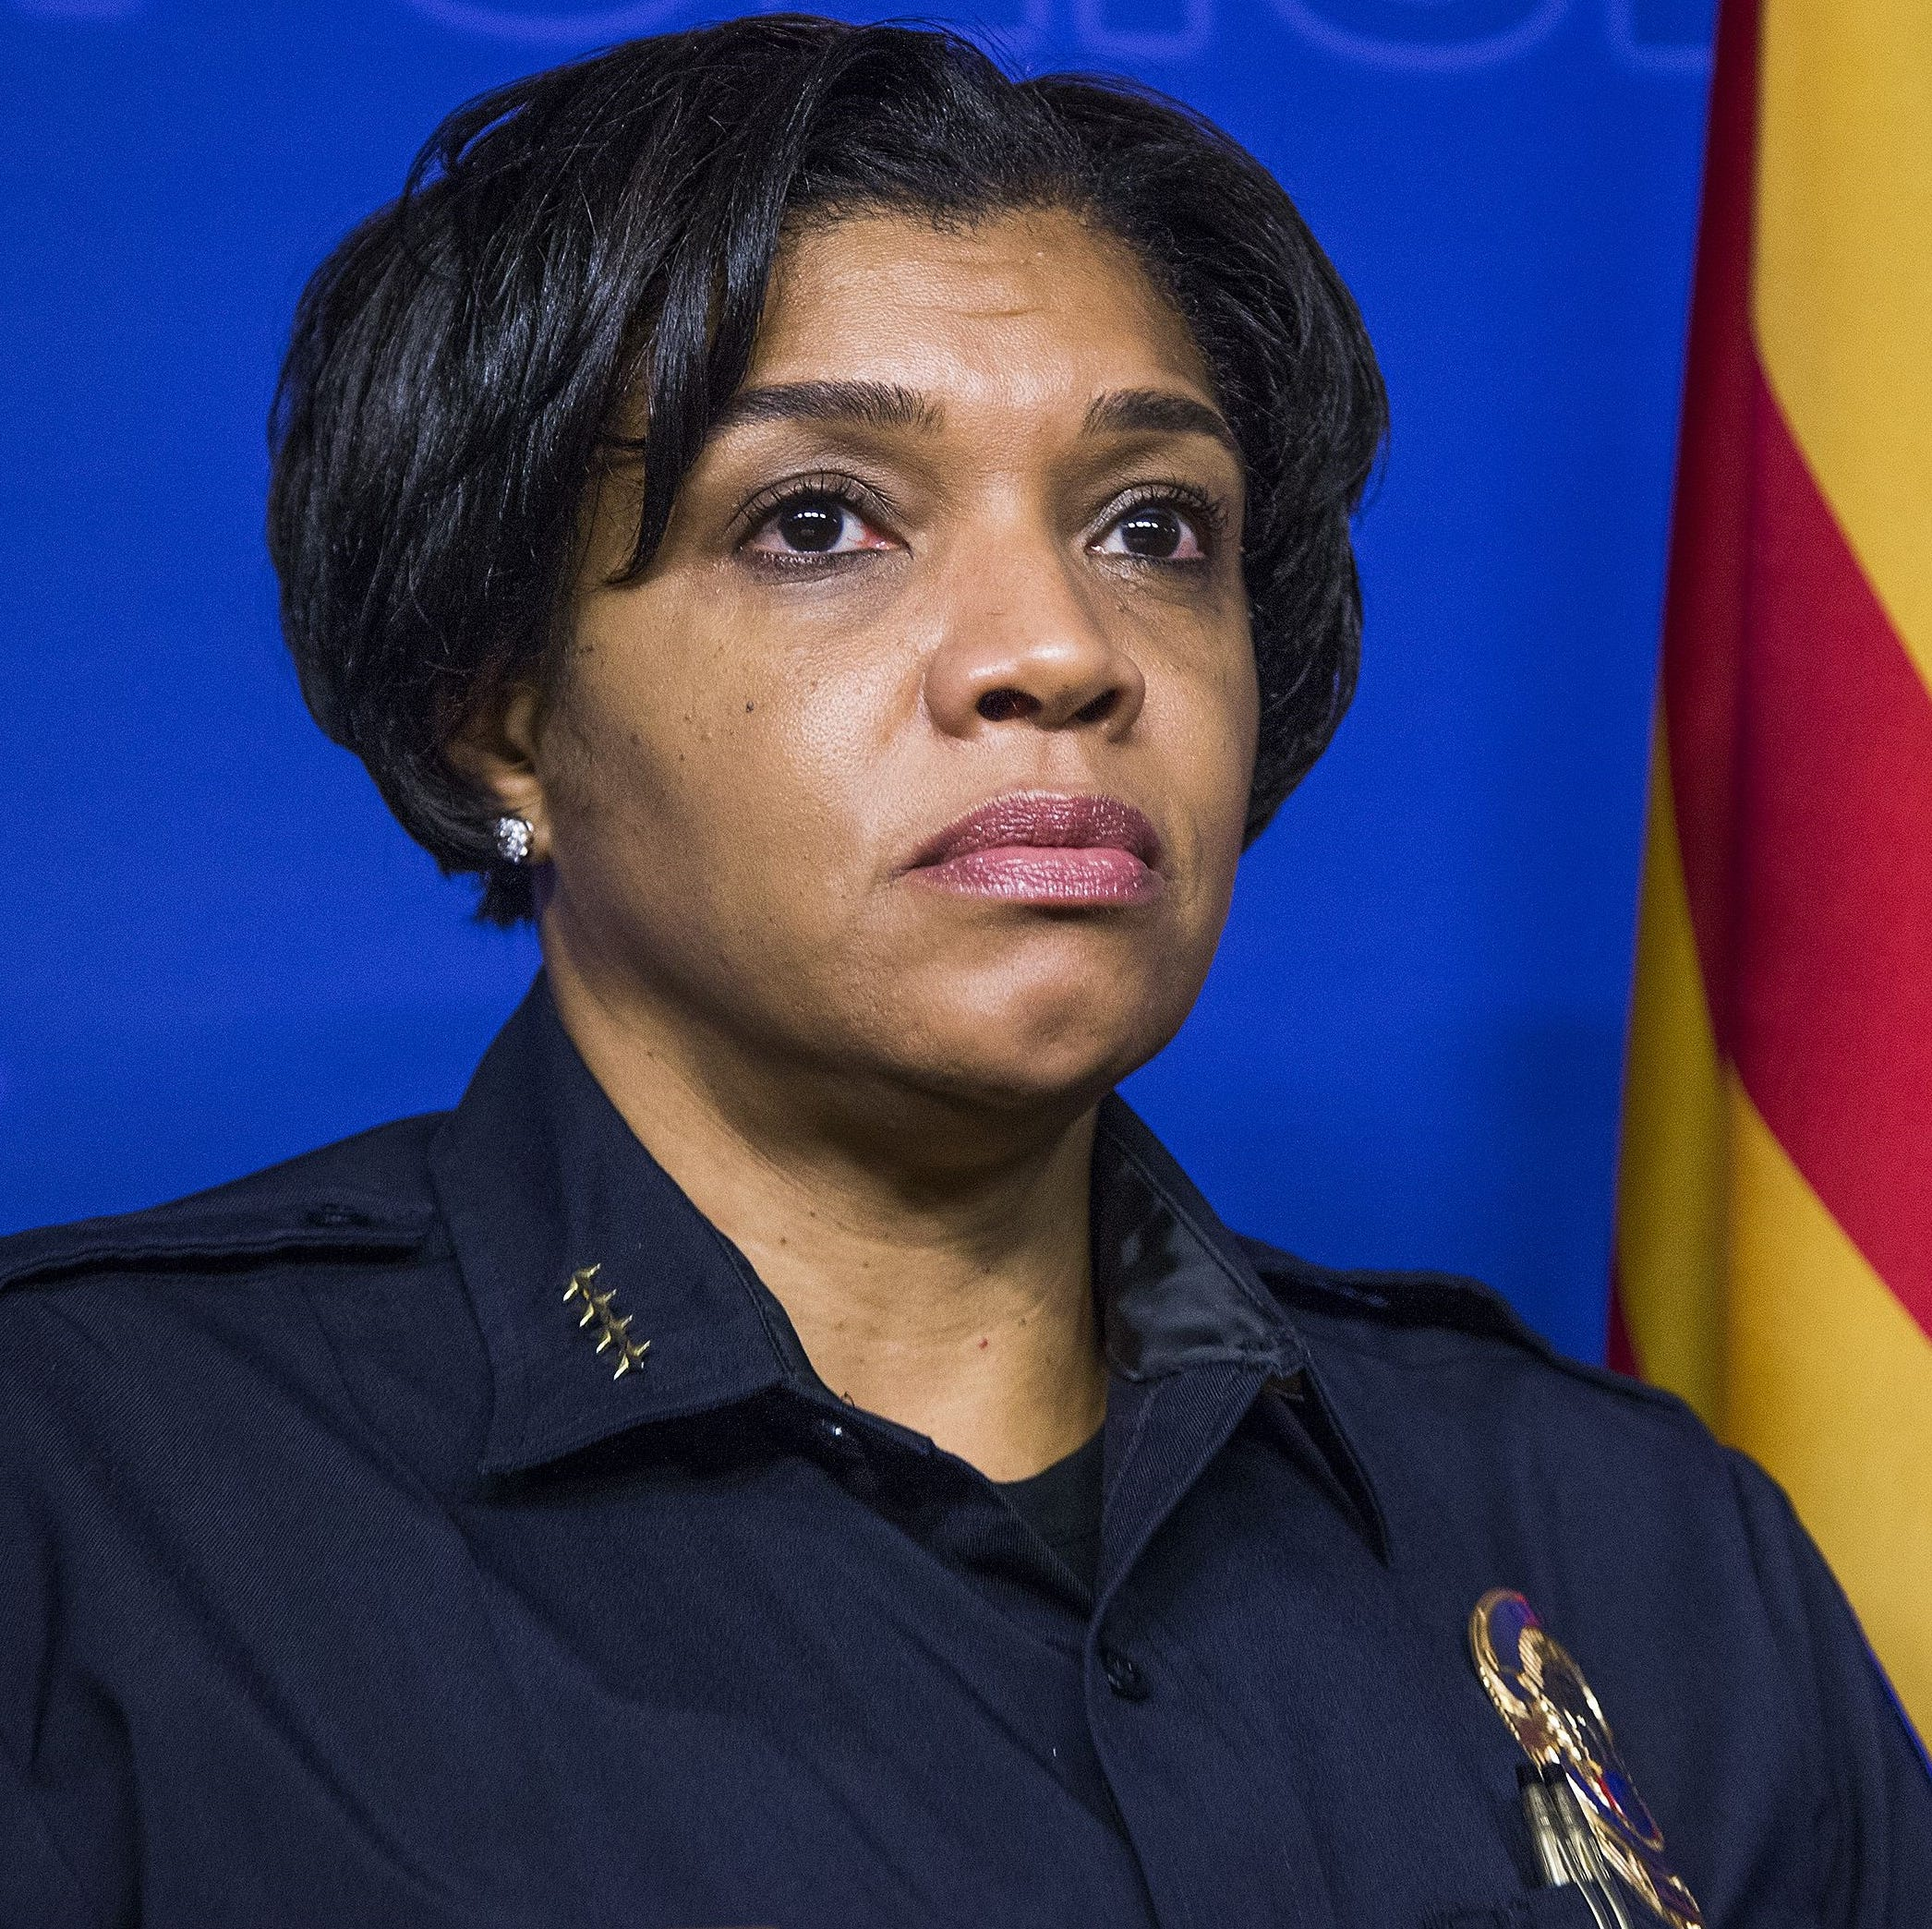 New York Times article 'misrepresents' shootings, Phoenix police chief says